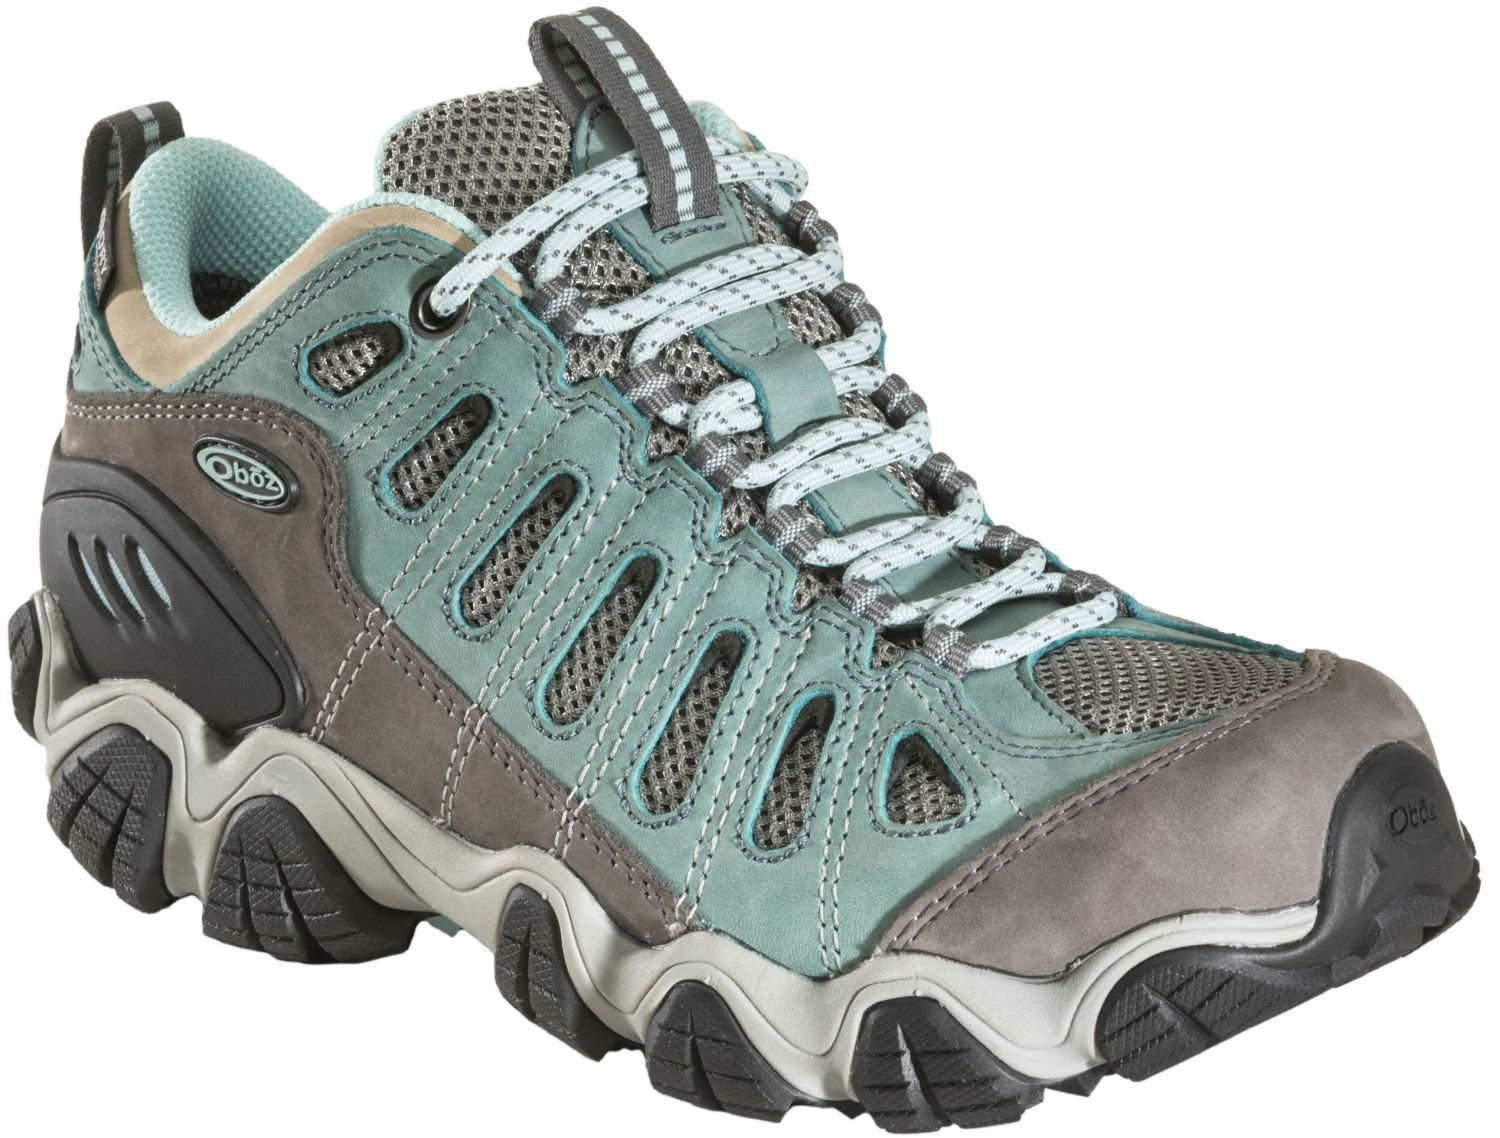 Oboz Sawtooth Low BDry Hiking Shoe - Women's Mineral Blue 11 B(M) US by Oboz